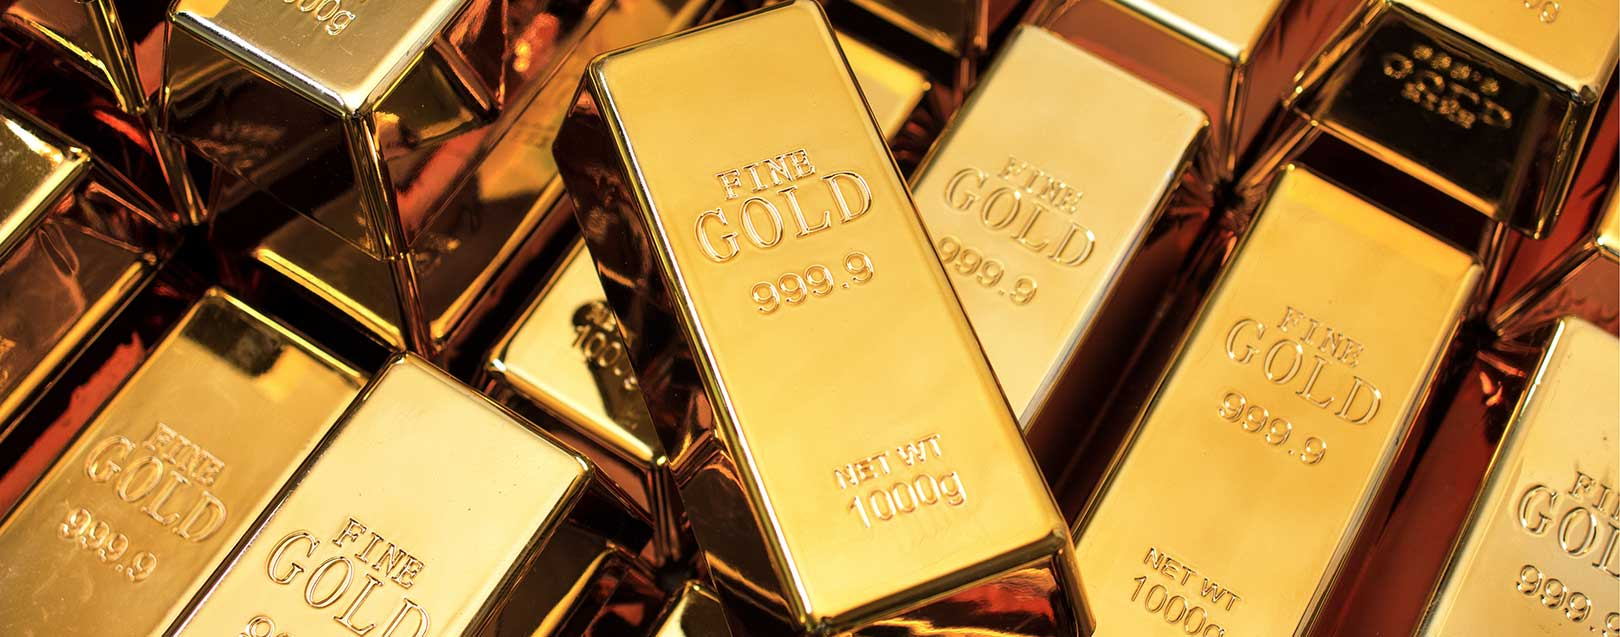 Gold imports surge 3-fold to $3.85 bn in April